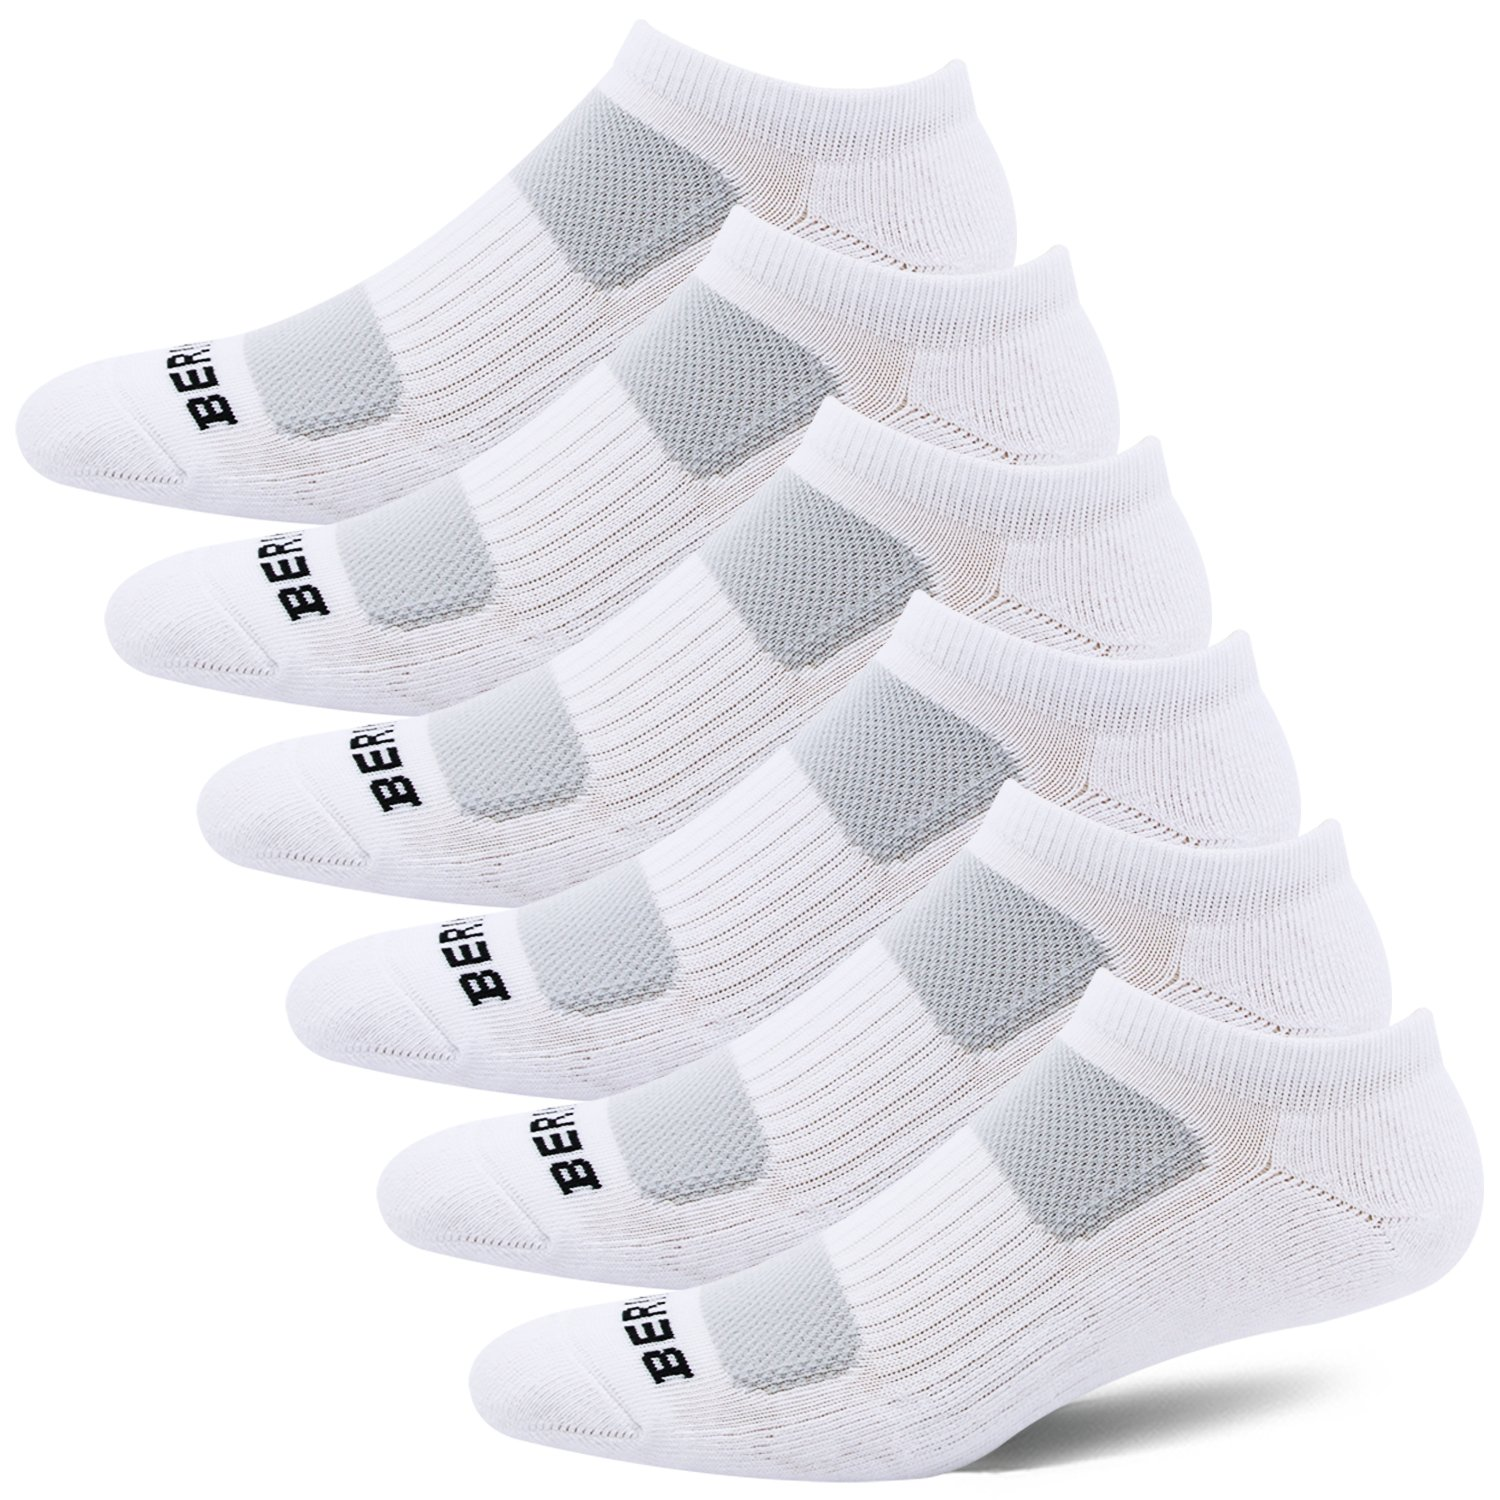 BERING Women's Athletic Low Ankle Cushion Socks, White, Size 8-12, 6 Pairs